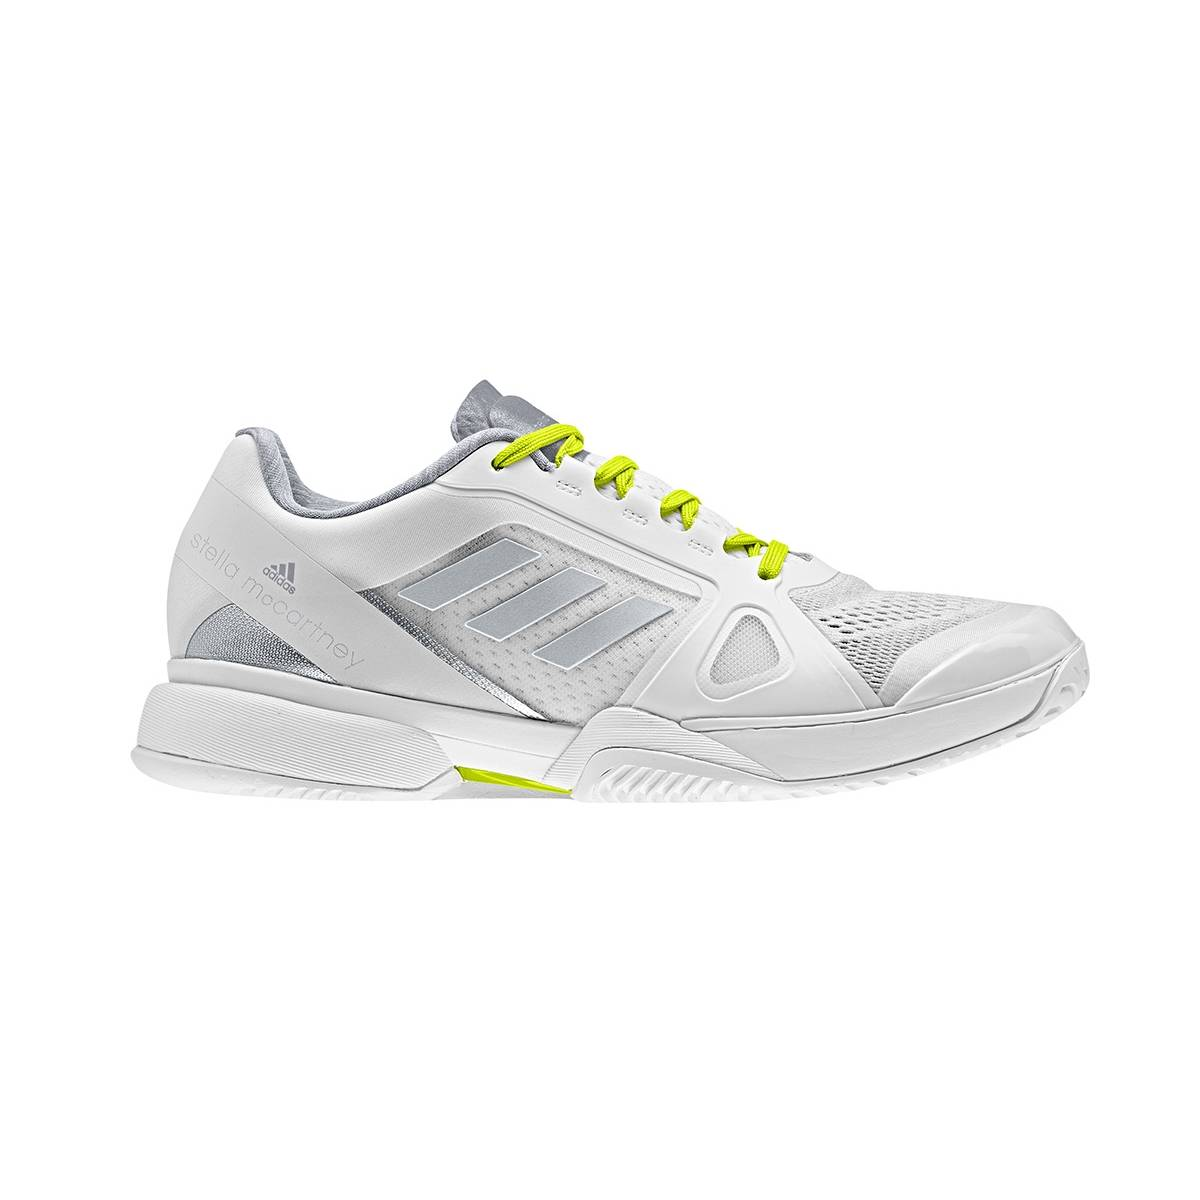 Adidas Barricade Stella Mccartney White 36 2/3